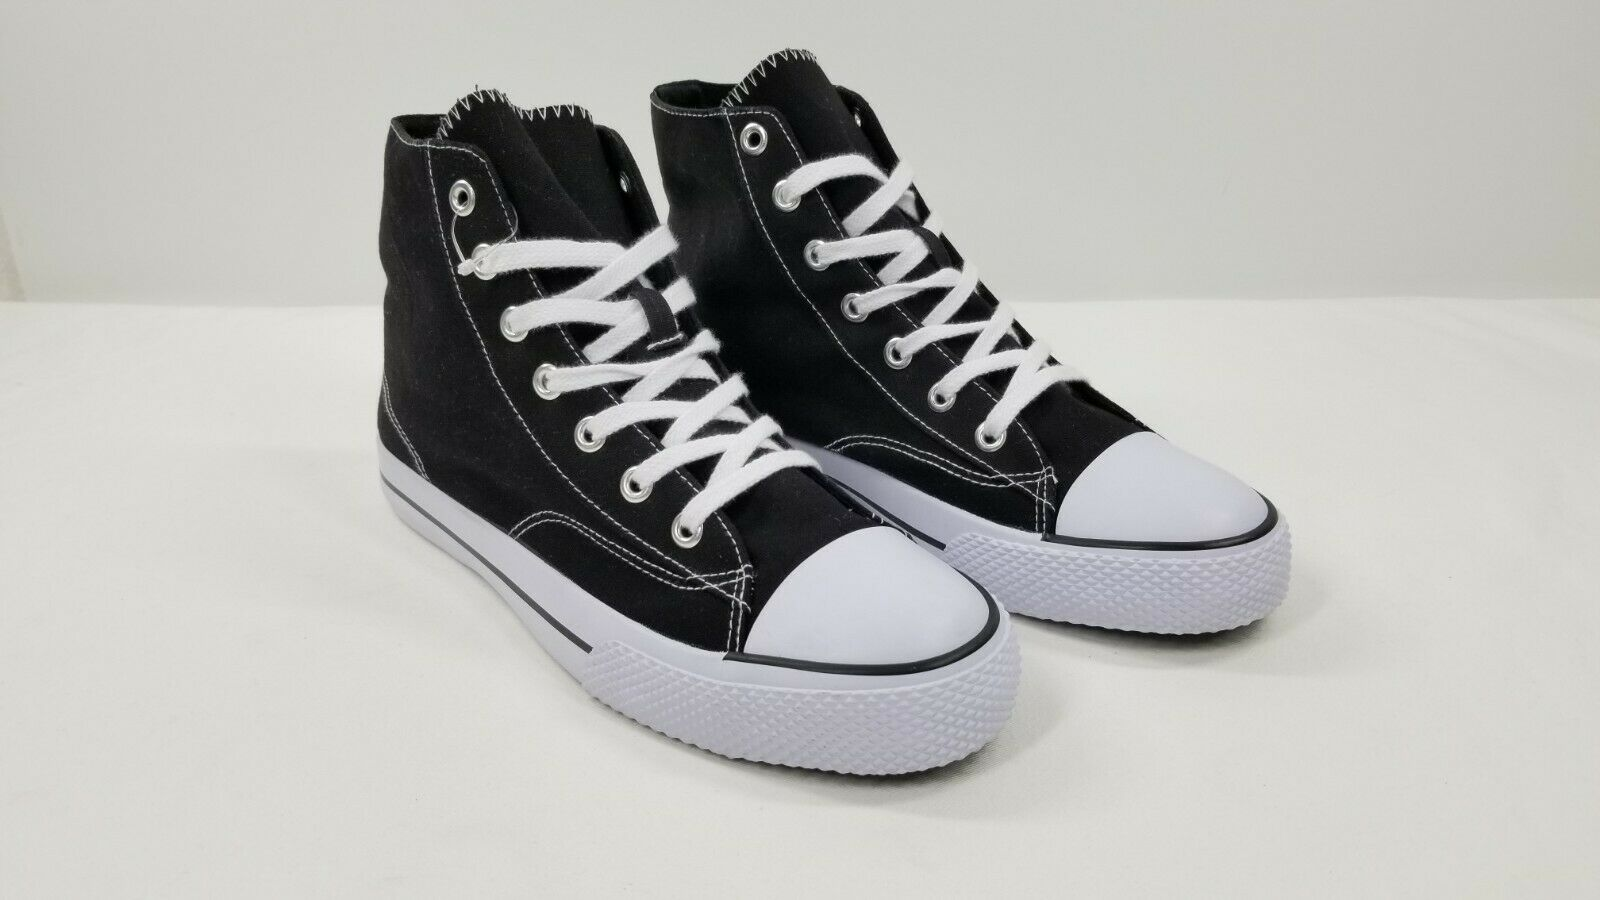 Black High Top Air Walk Shoes Sneakers Size 12 Women's Tenni